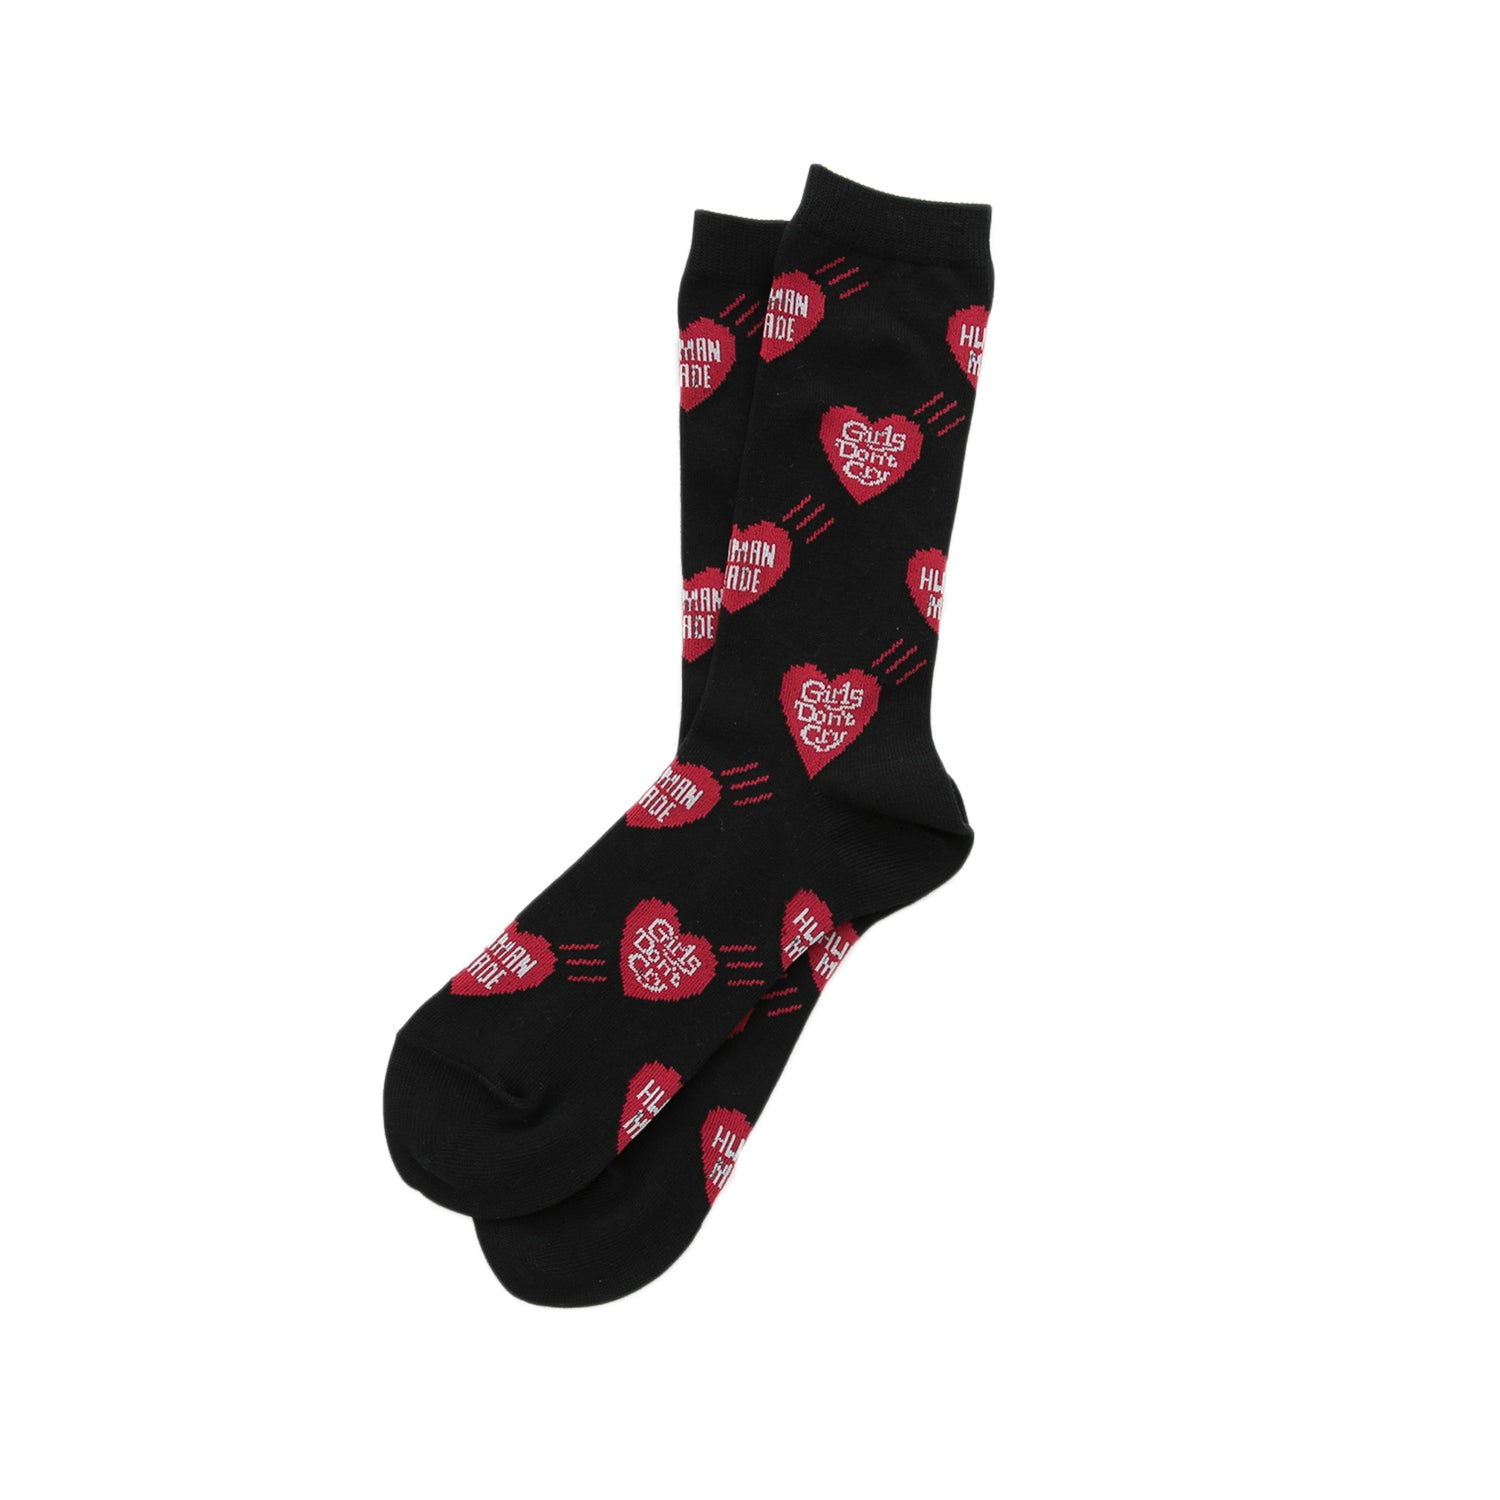 HUMAN MADE x GIRLS DON'T CRY HEART PATTERN SOCKS